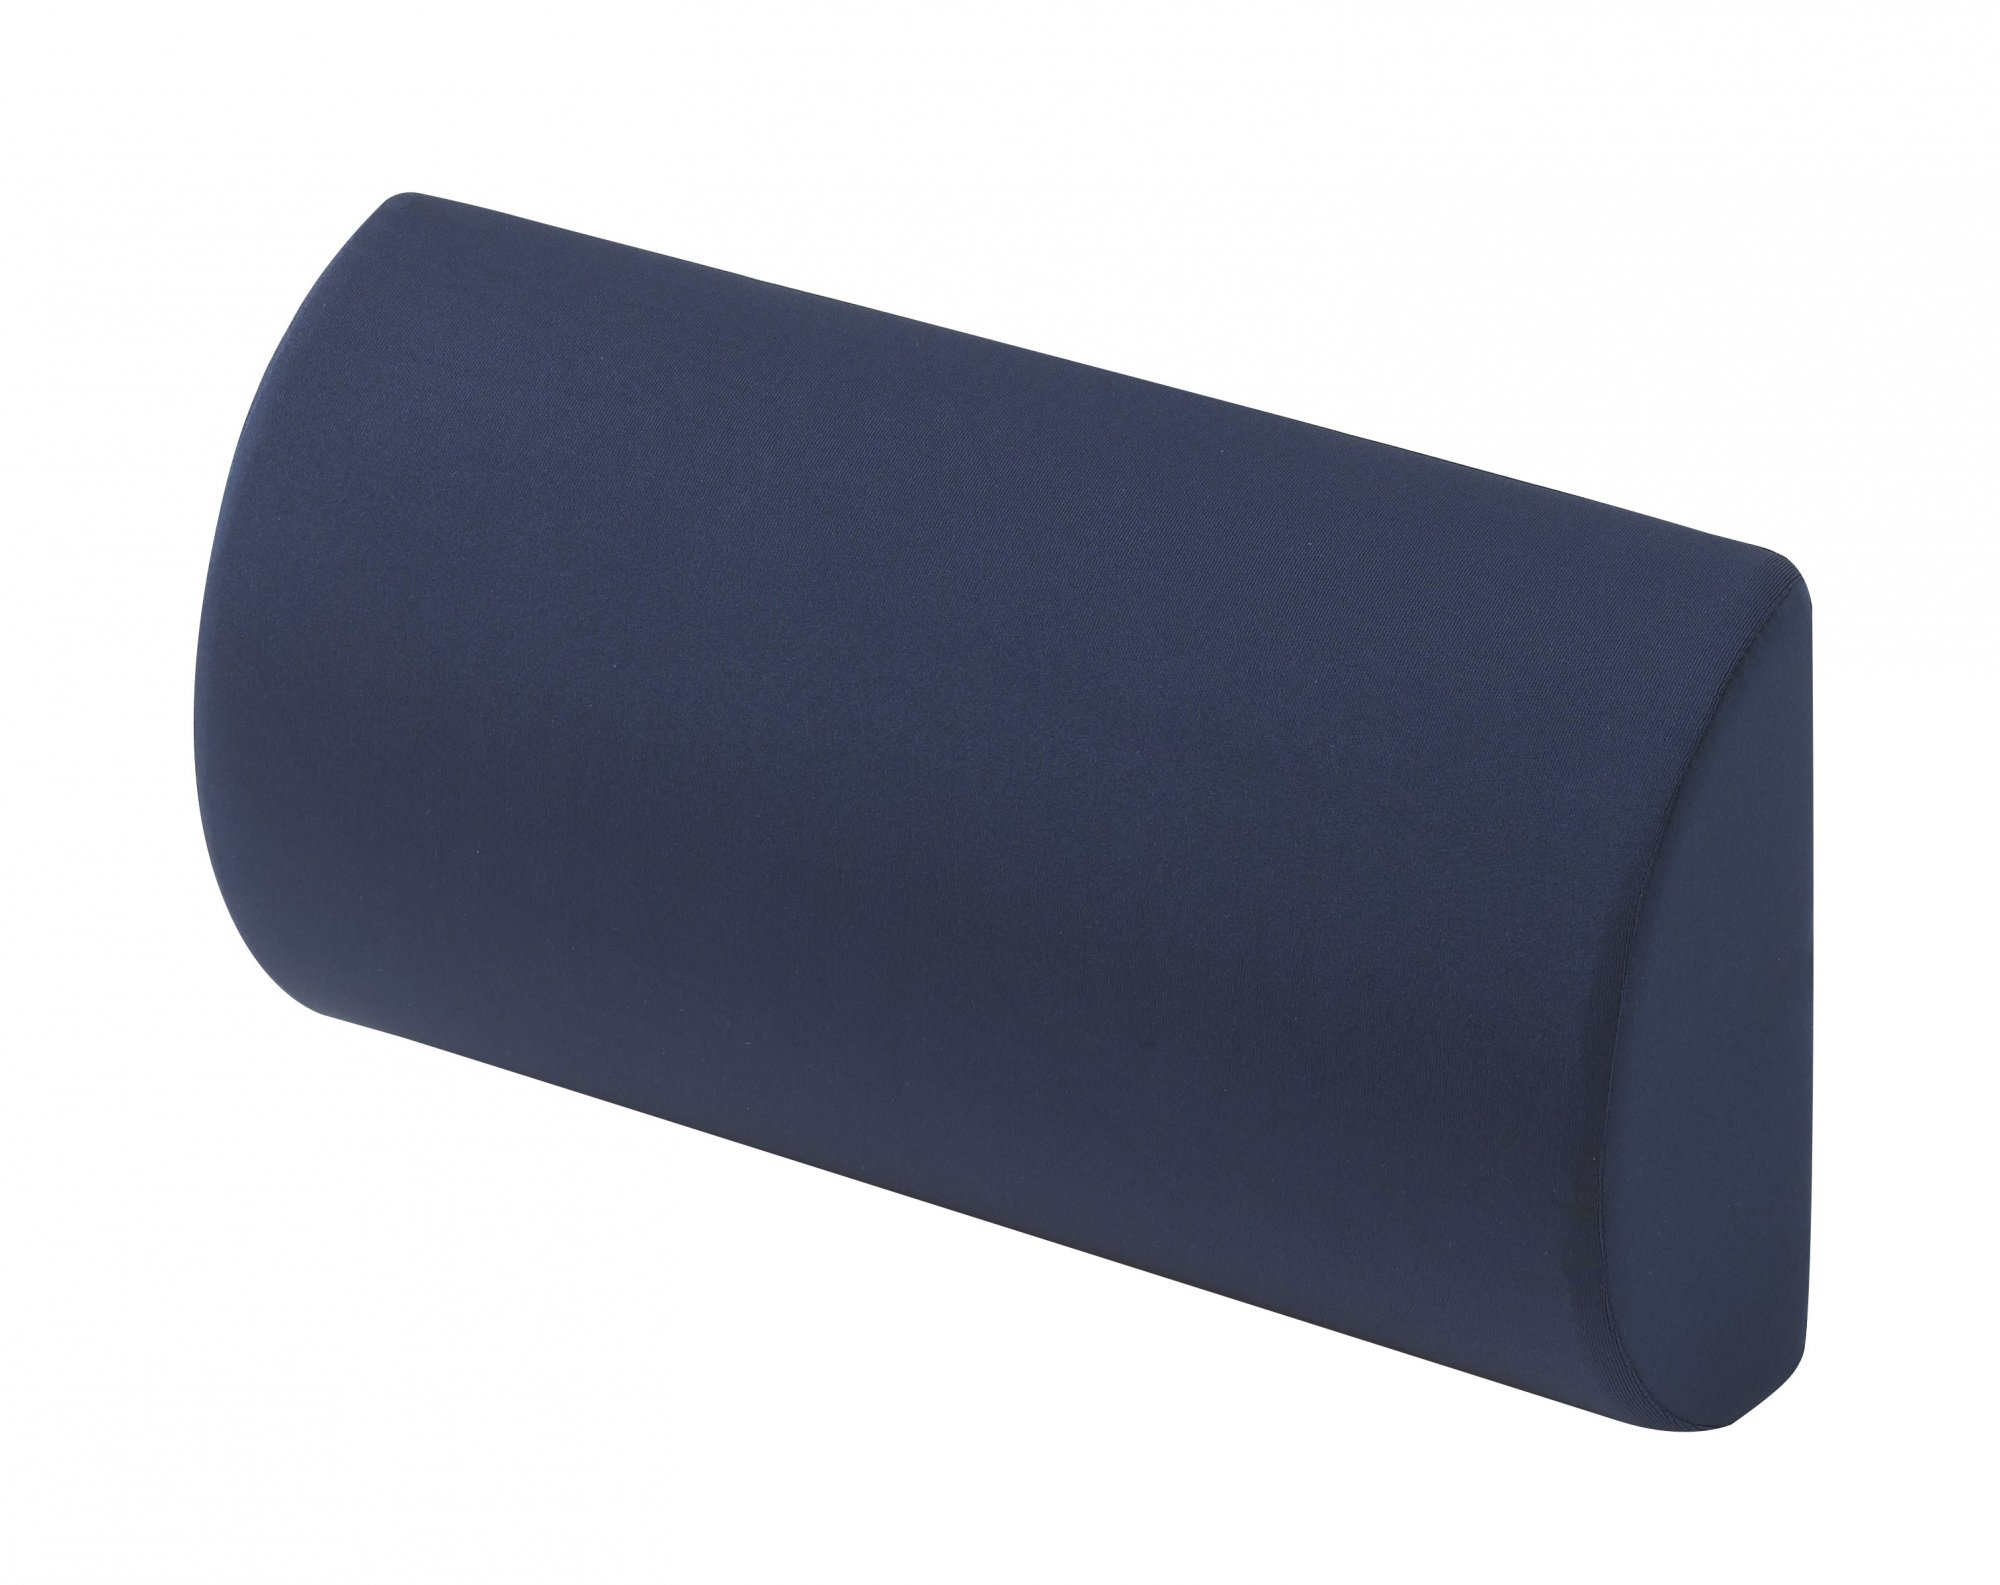 DRIVE Compressed Posture Support Cushion